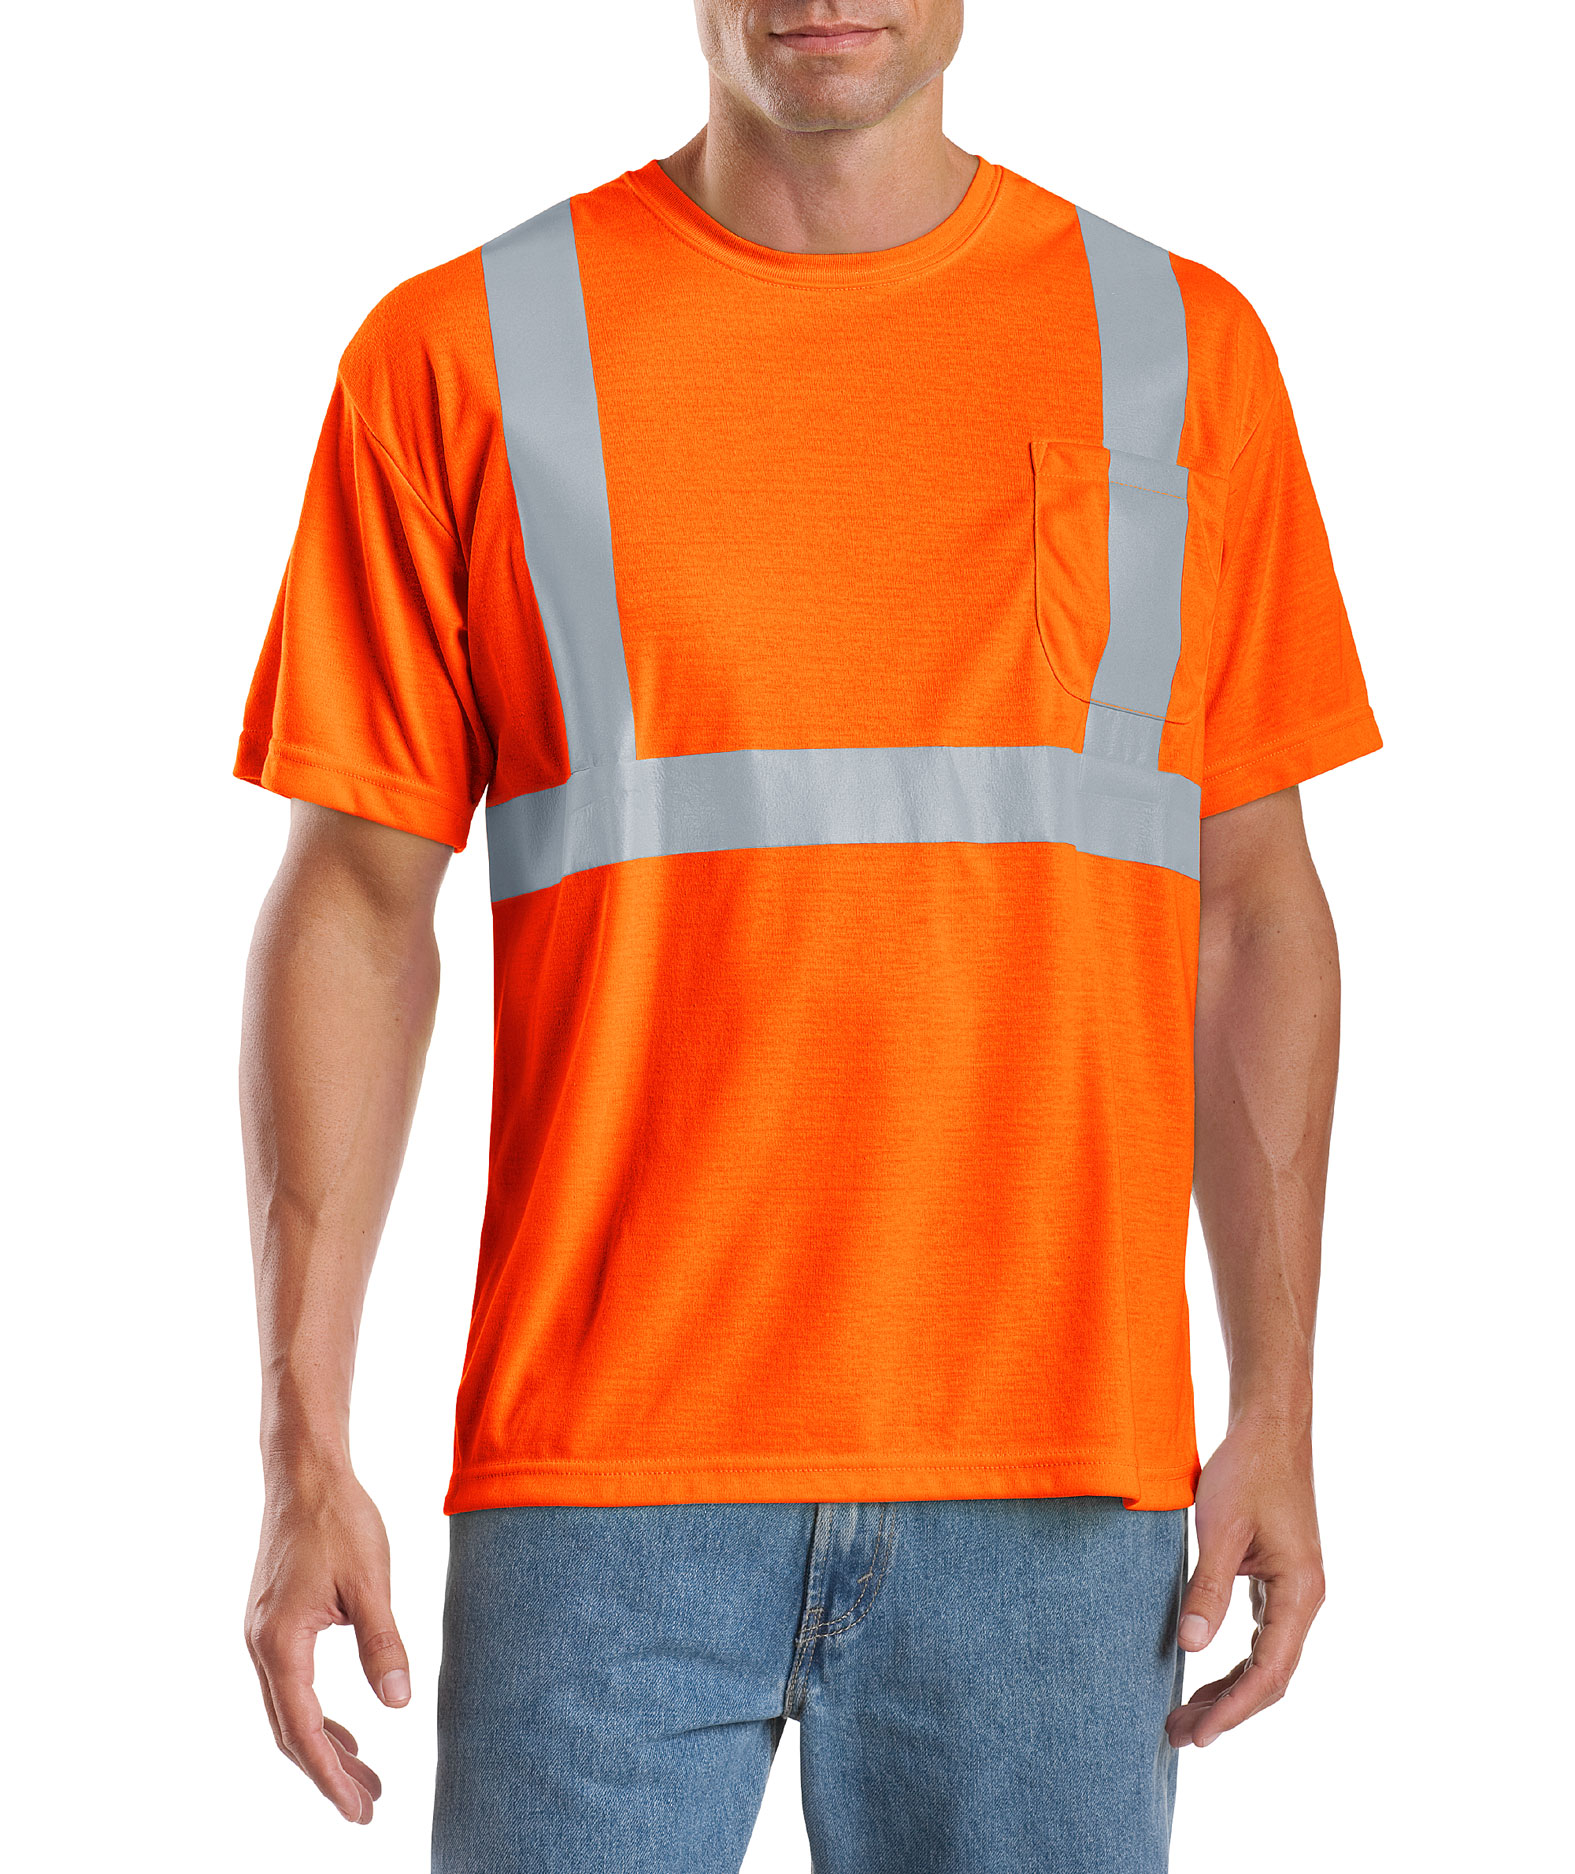 Mens ANSI 107 Class 2 Safety T-Shirt